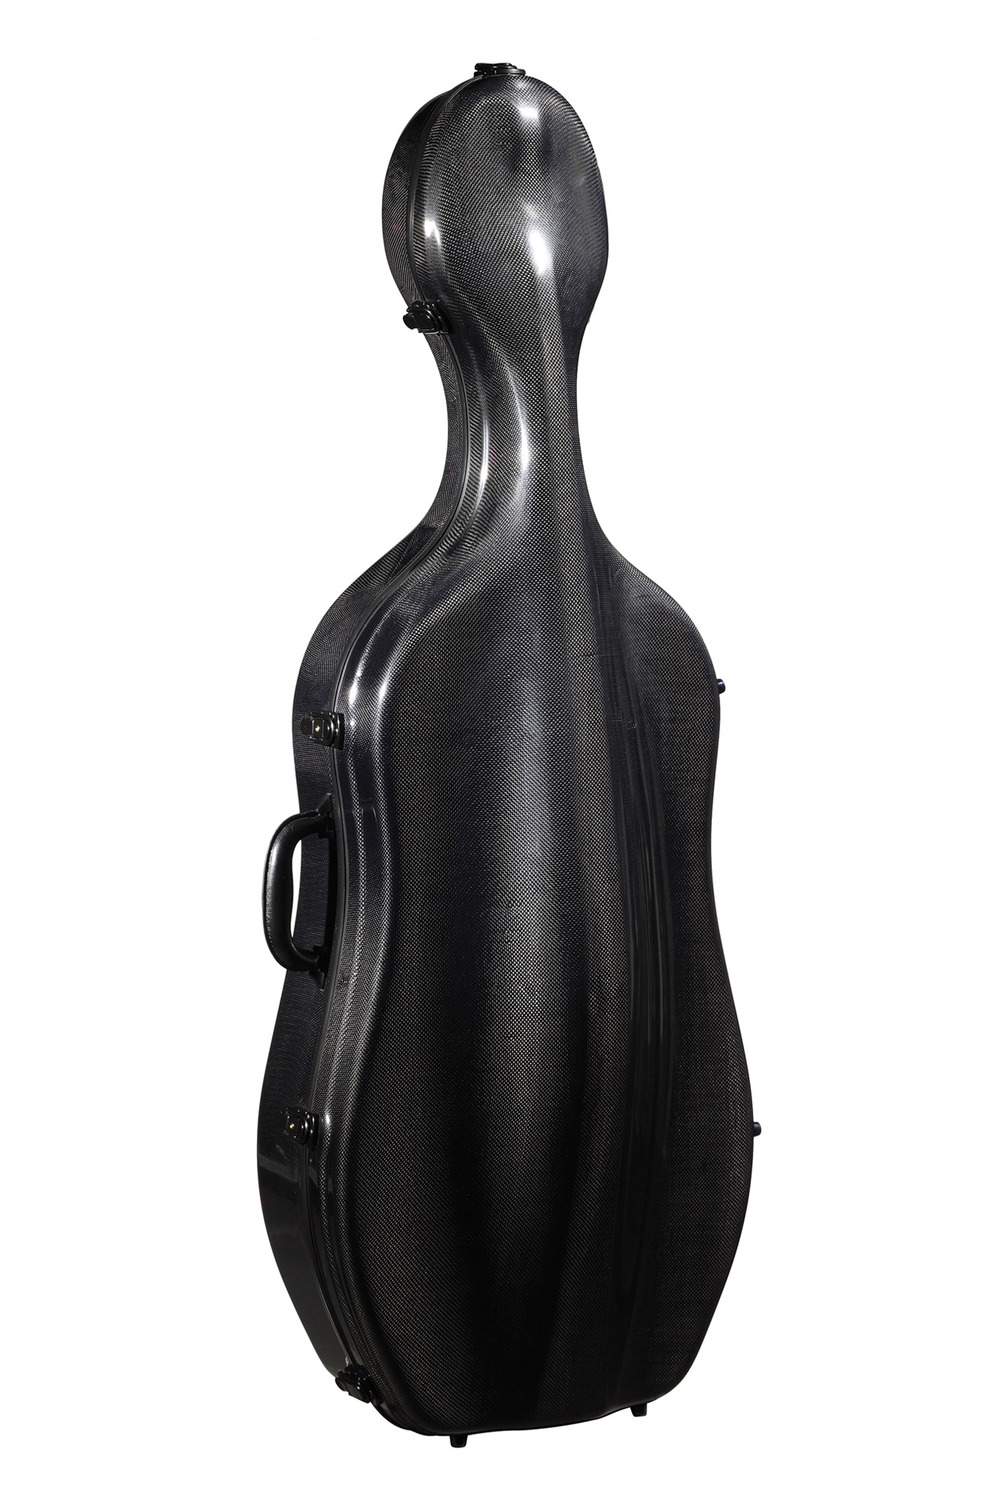 Cello-K3W-black-front.jpg